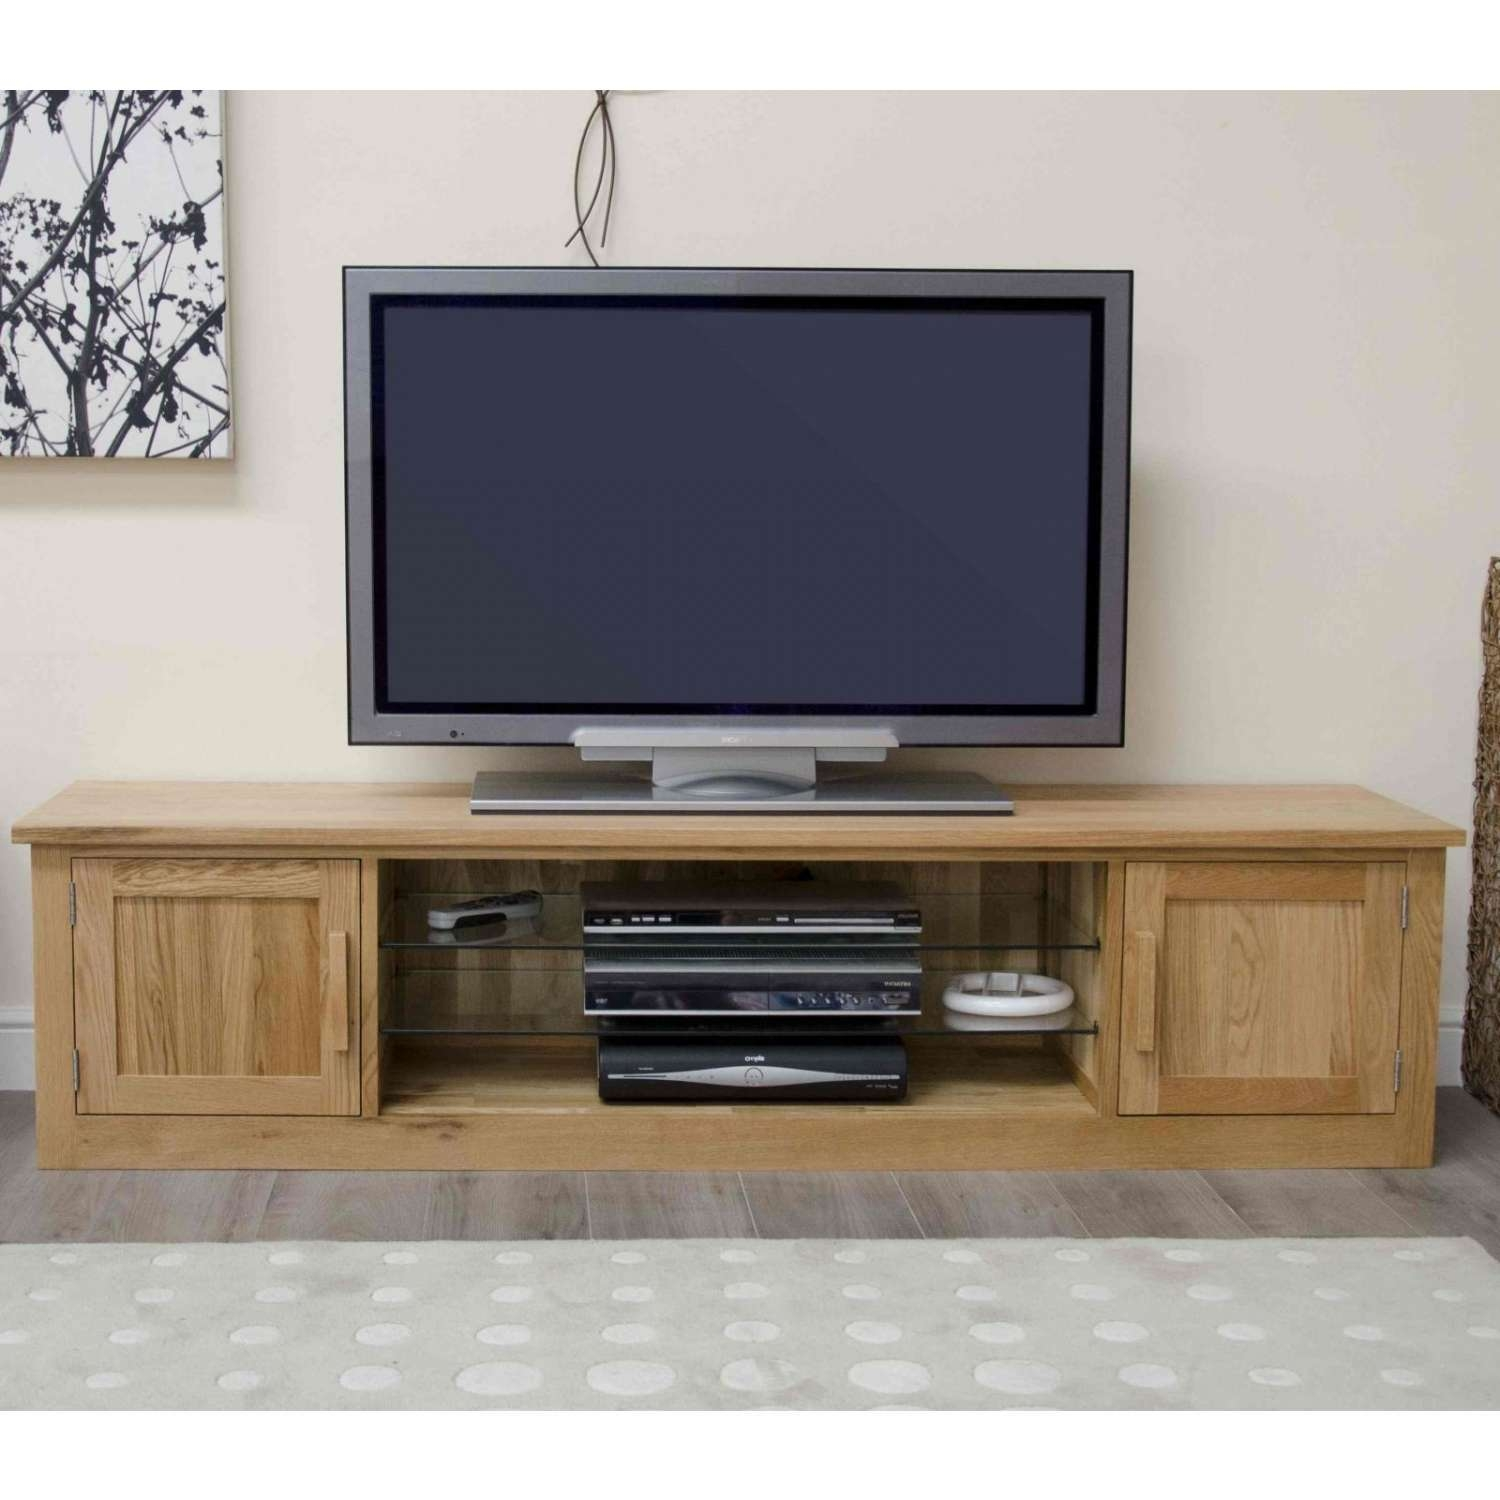 Arden Solid Oak Living Room Furniture Large Widescreen Tv Cabinet Within Wide Screen Tv Stands (View 2 of 15)